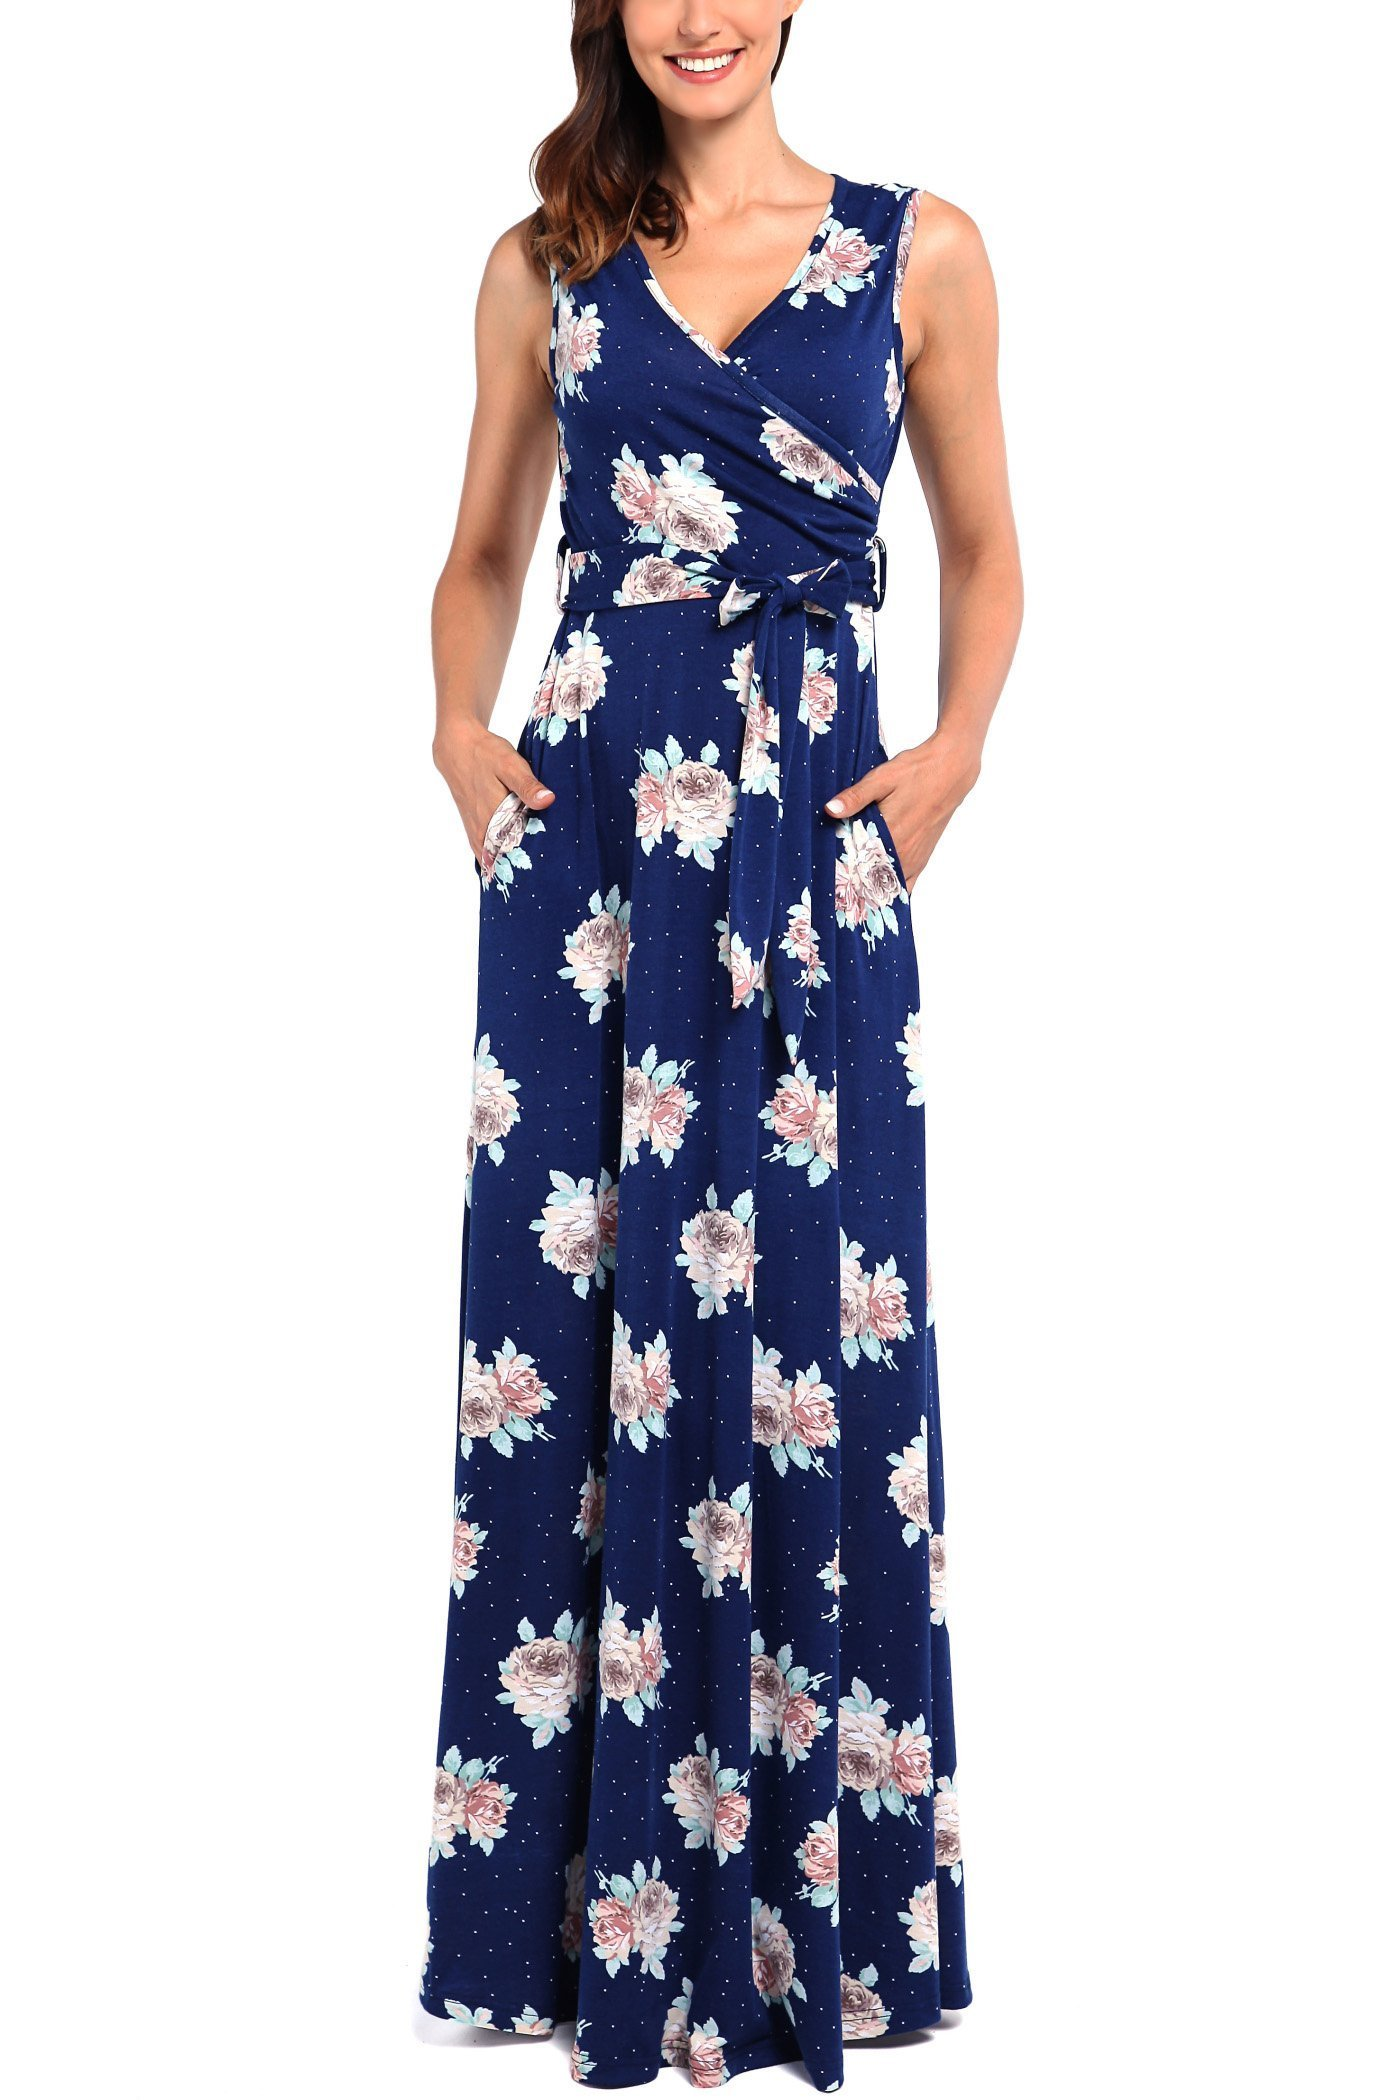 bc7dab53d46 Galleon - Comila Casual Dresses With Pockets